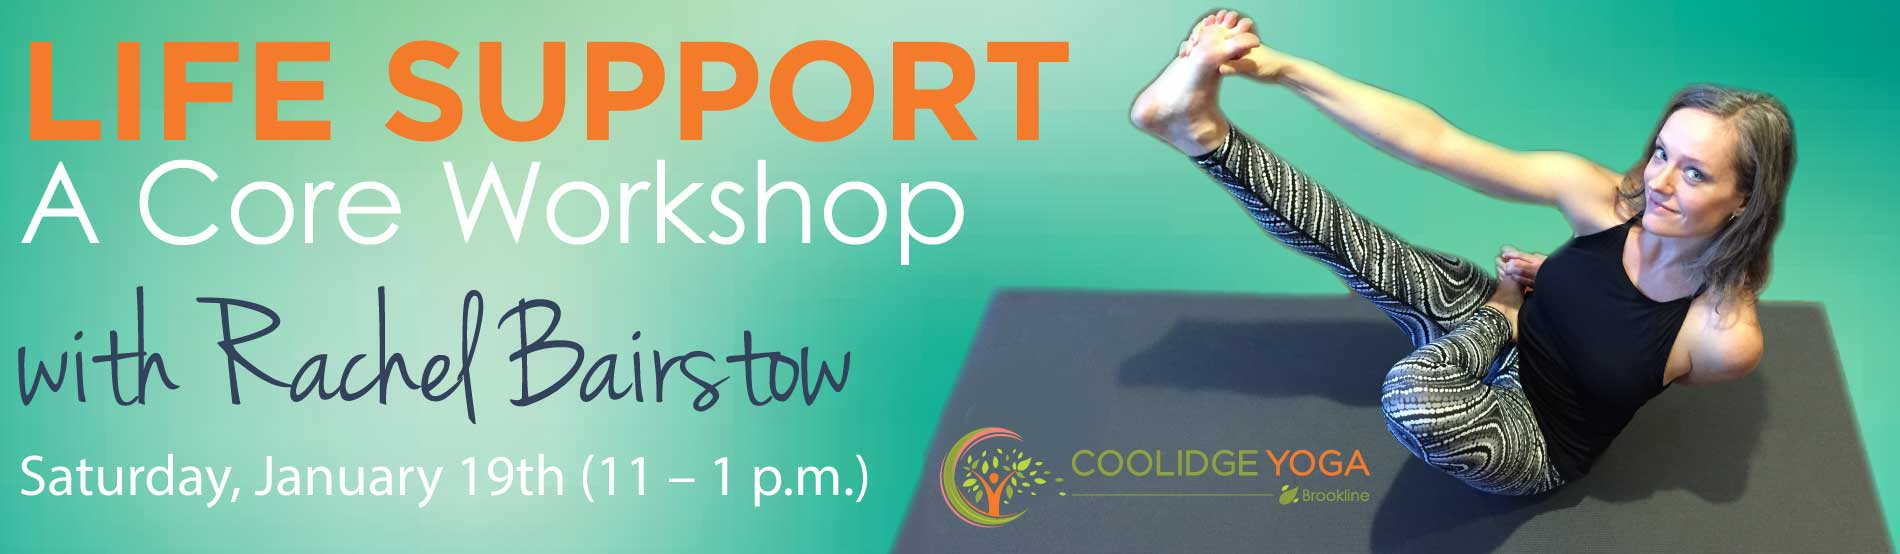 Life Support Workshop with Rachel Bairstow at Coolidge Yoga